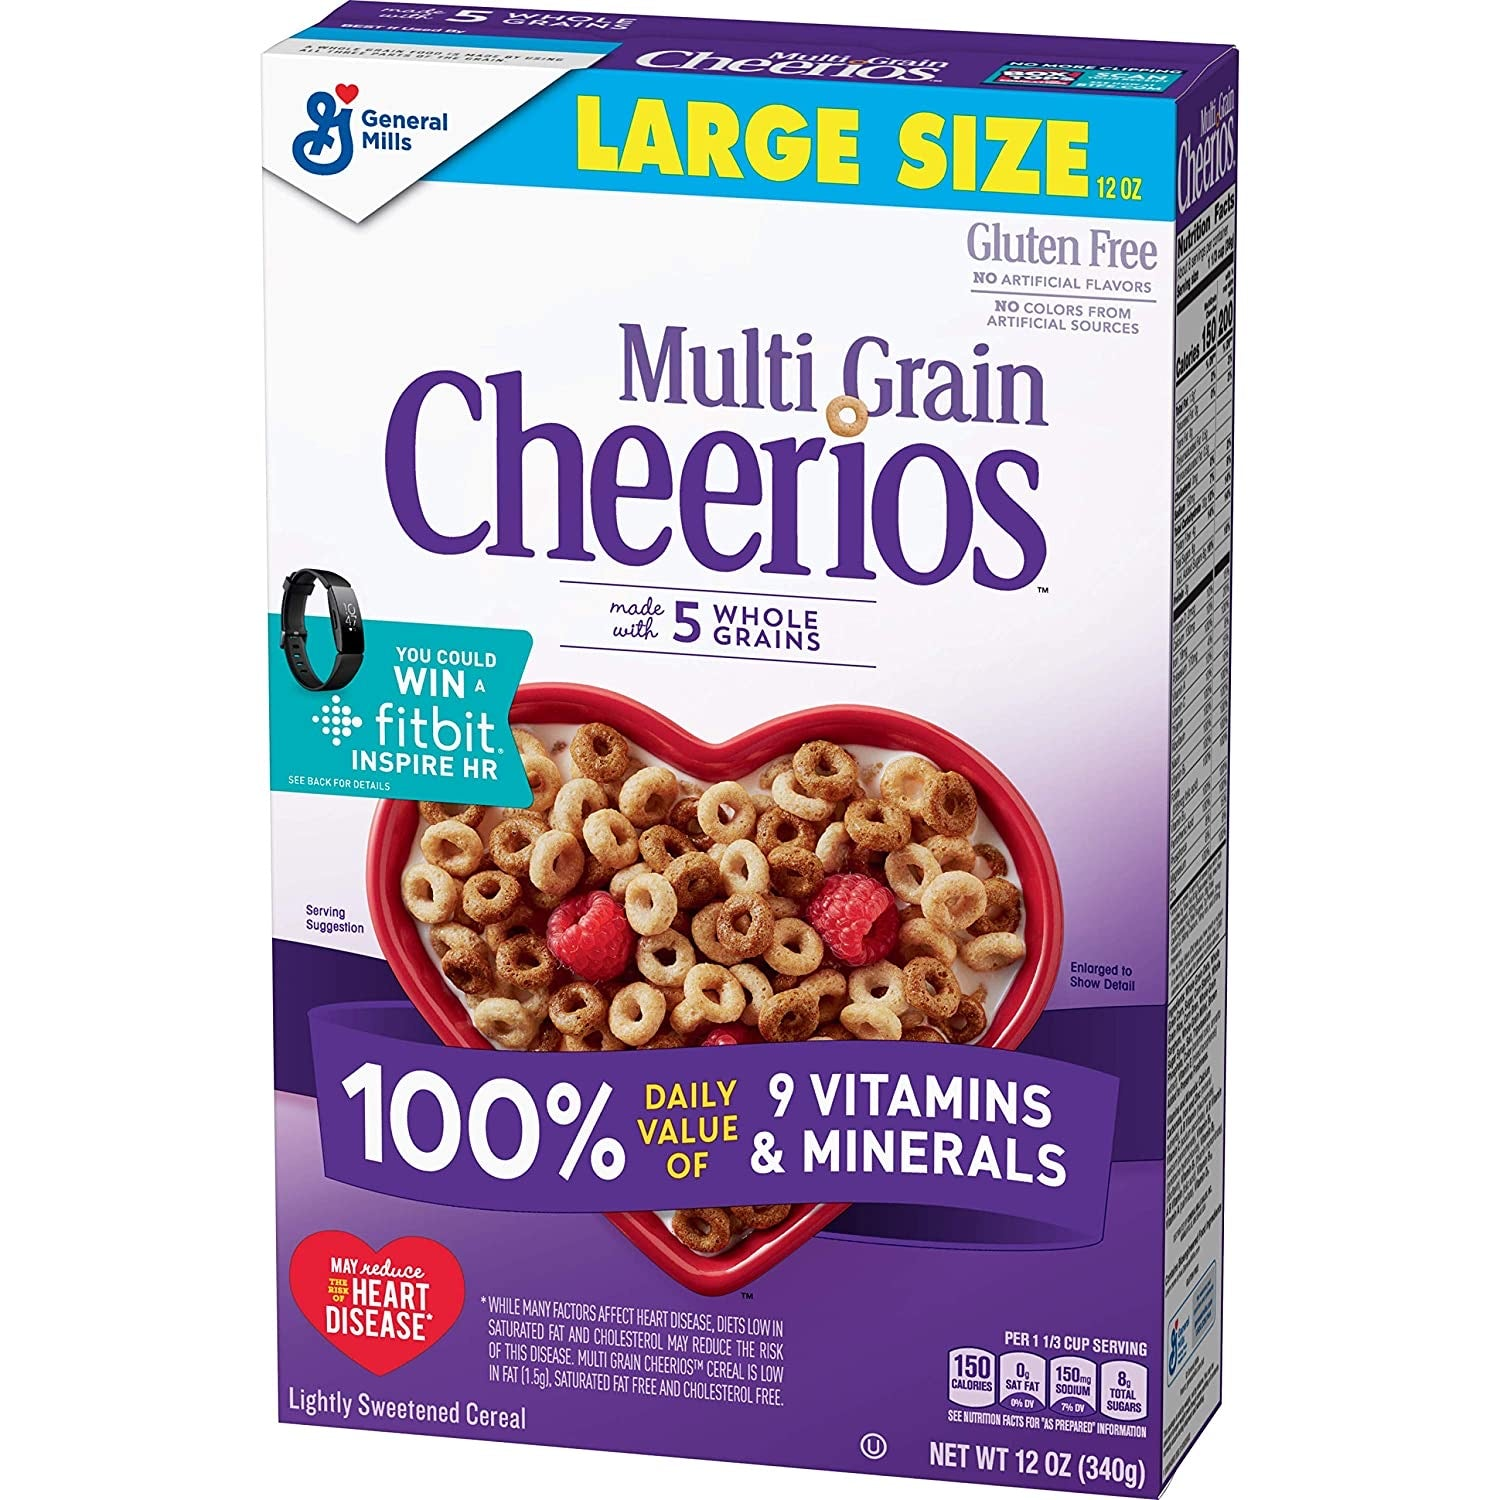 General Mills Multi Grains Cheerios